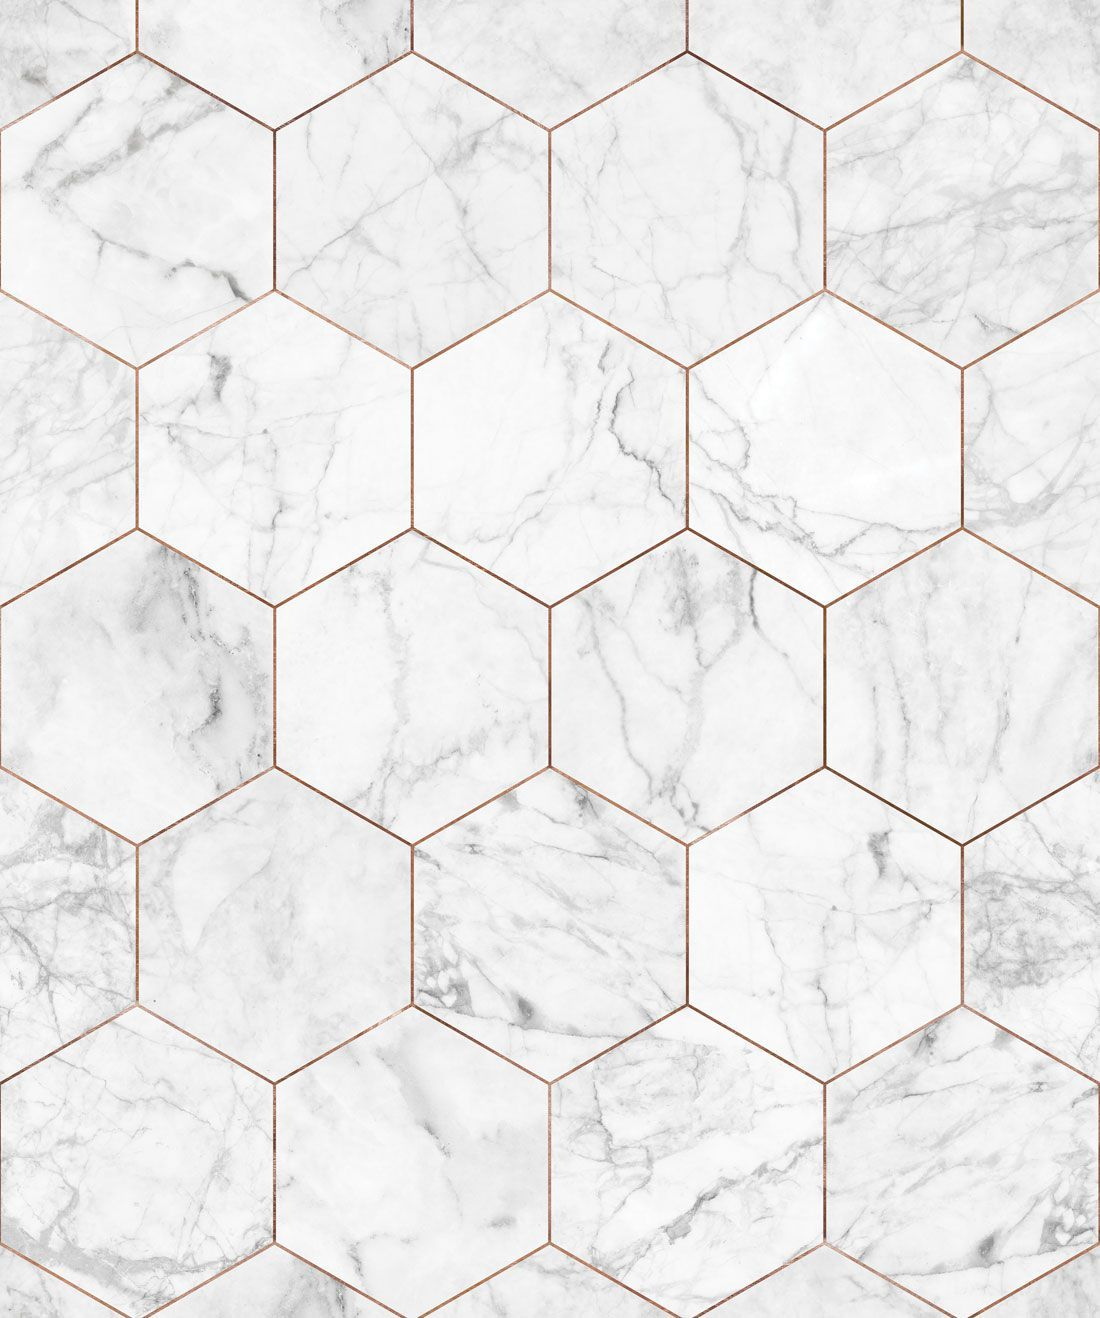 Marble & Copper Tiles Wallpaper • Crisp Marble Tiles #whitemarbleflooring